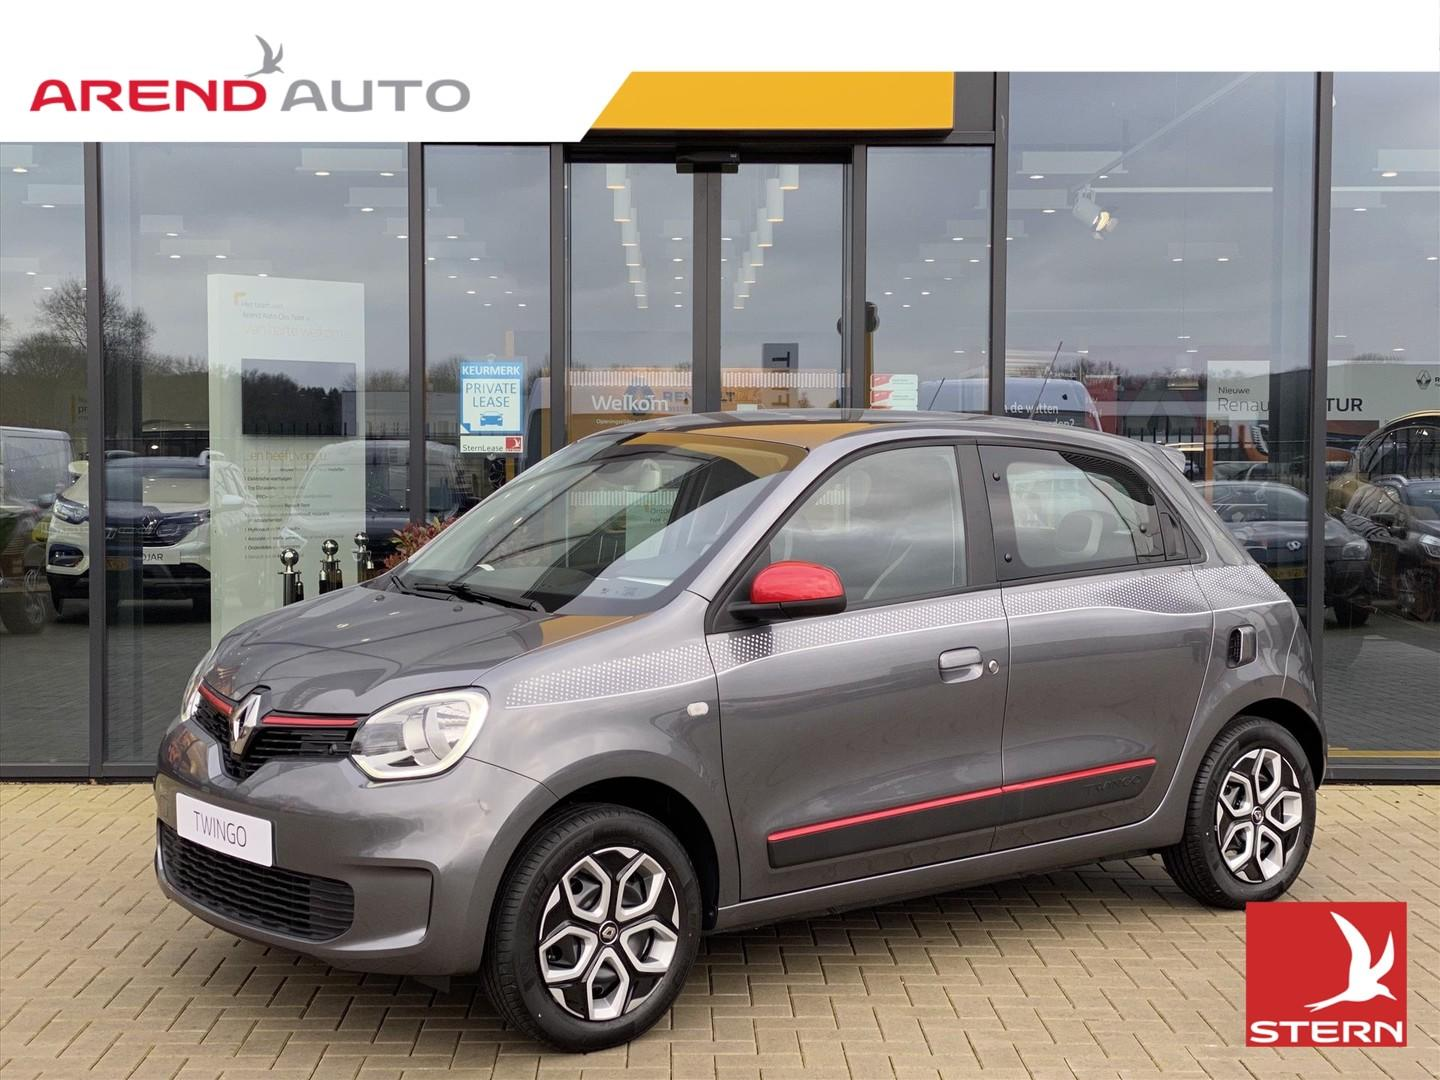 Renault Twingo Sce 75 collection private lease